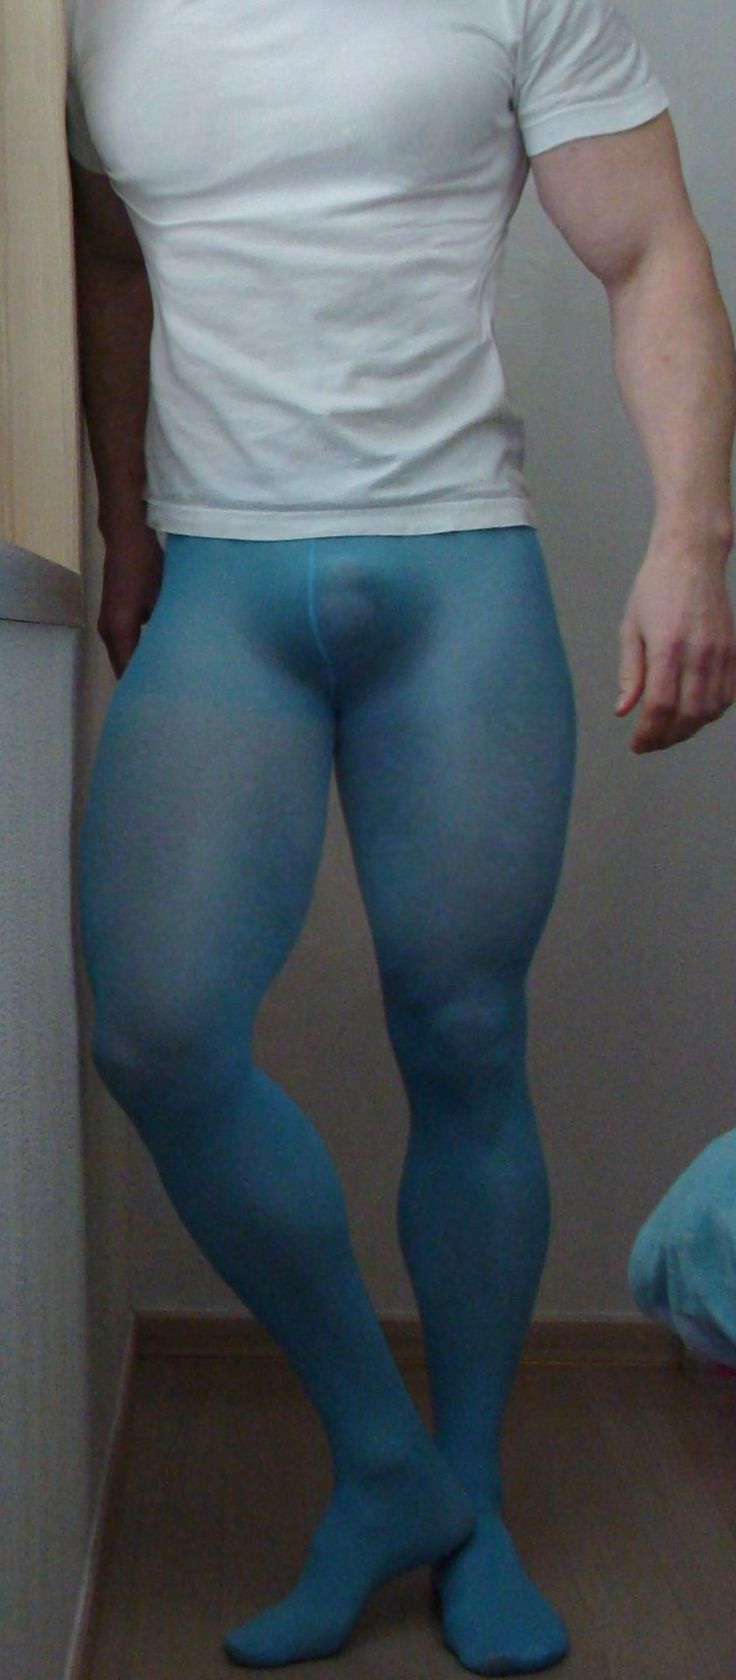 Male pantyhose tumblr